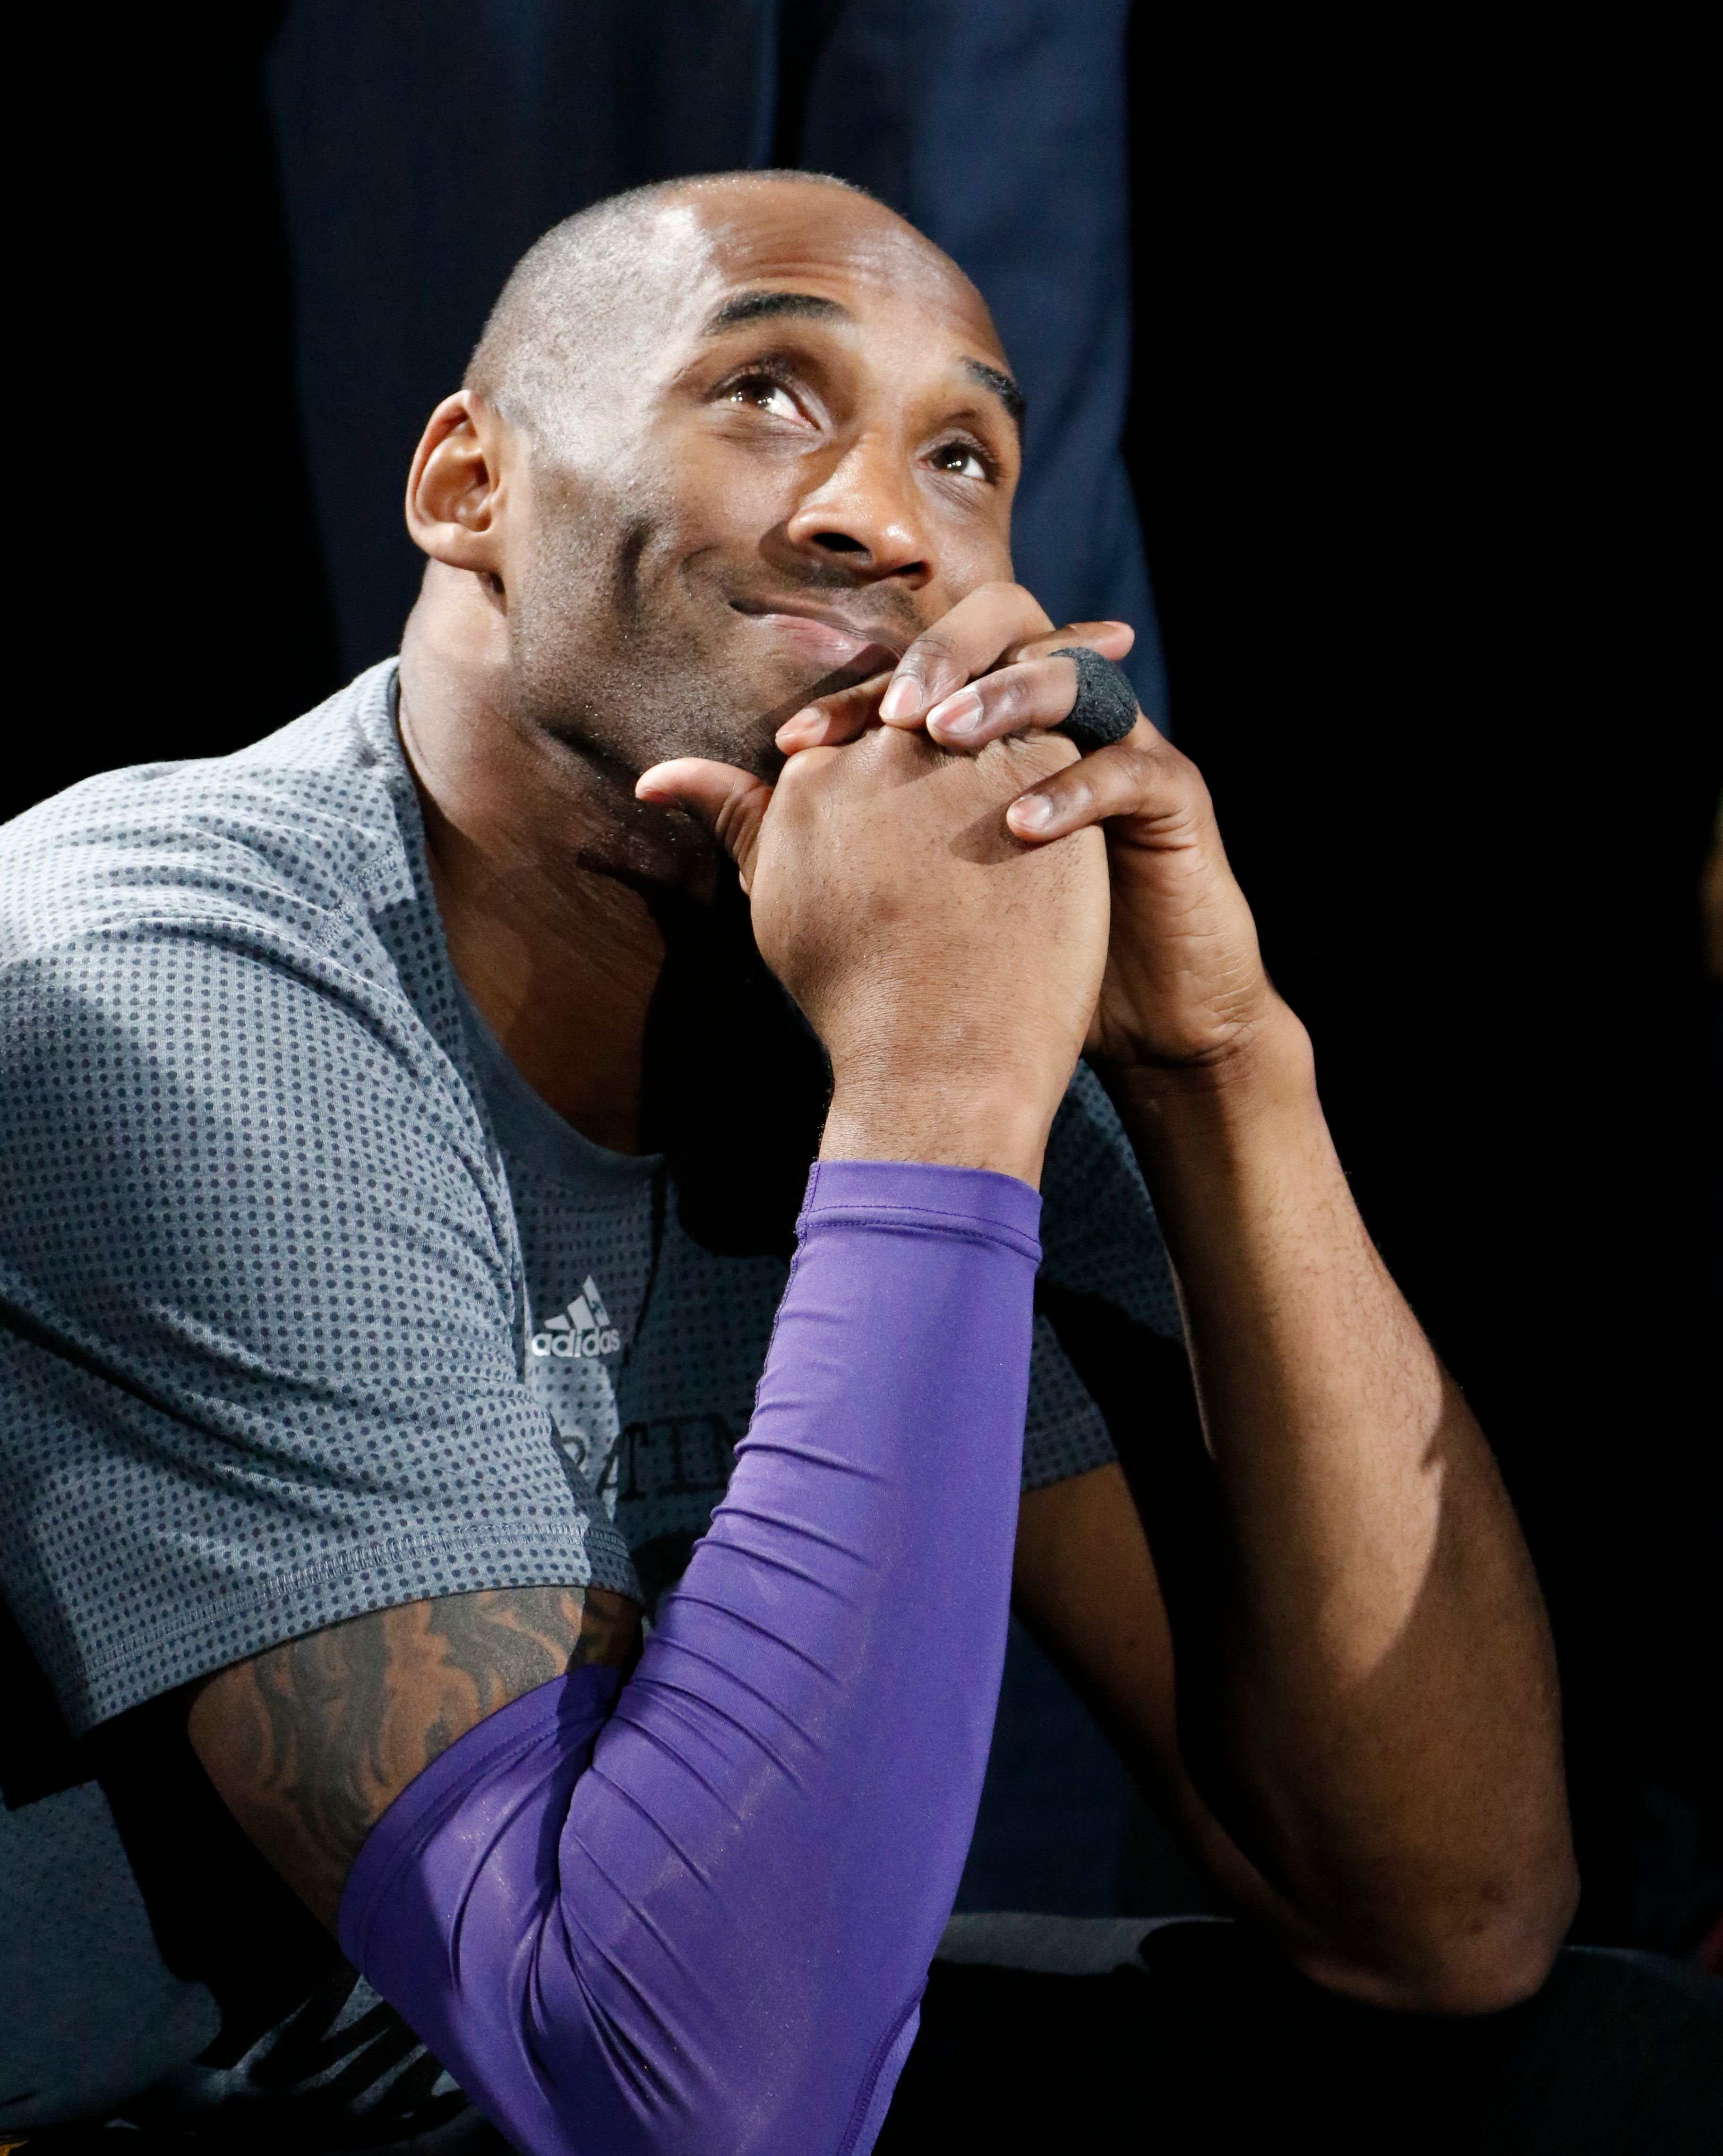 Kobe Bryant at AT&T Center on February 6, 2016 in San Antonio, Texas. | Source: Getty Images